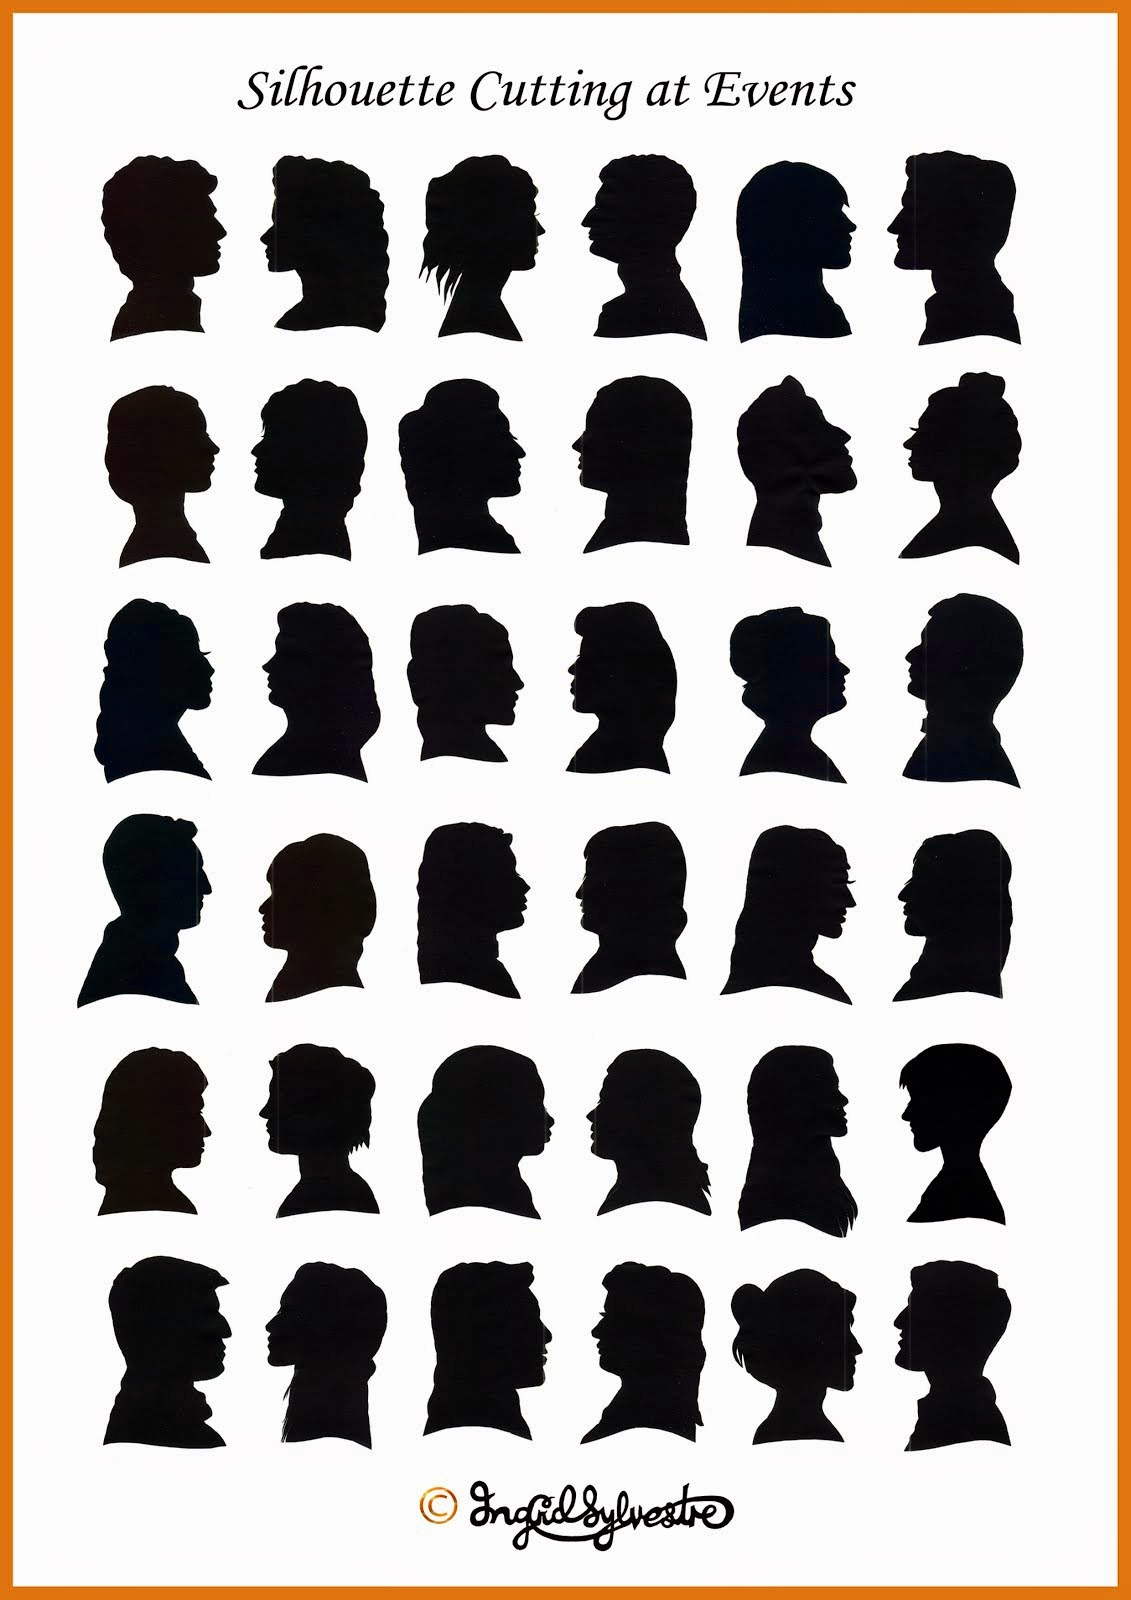 Silhouettes cut by Ingrid Sylvestre, weddings, parties, proms, corporate events